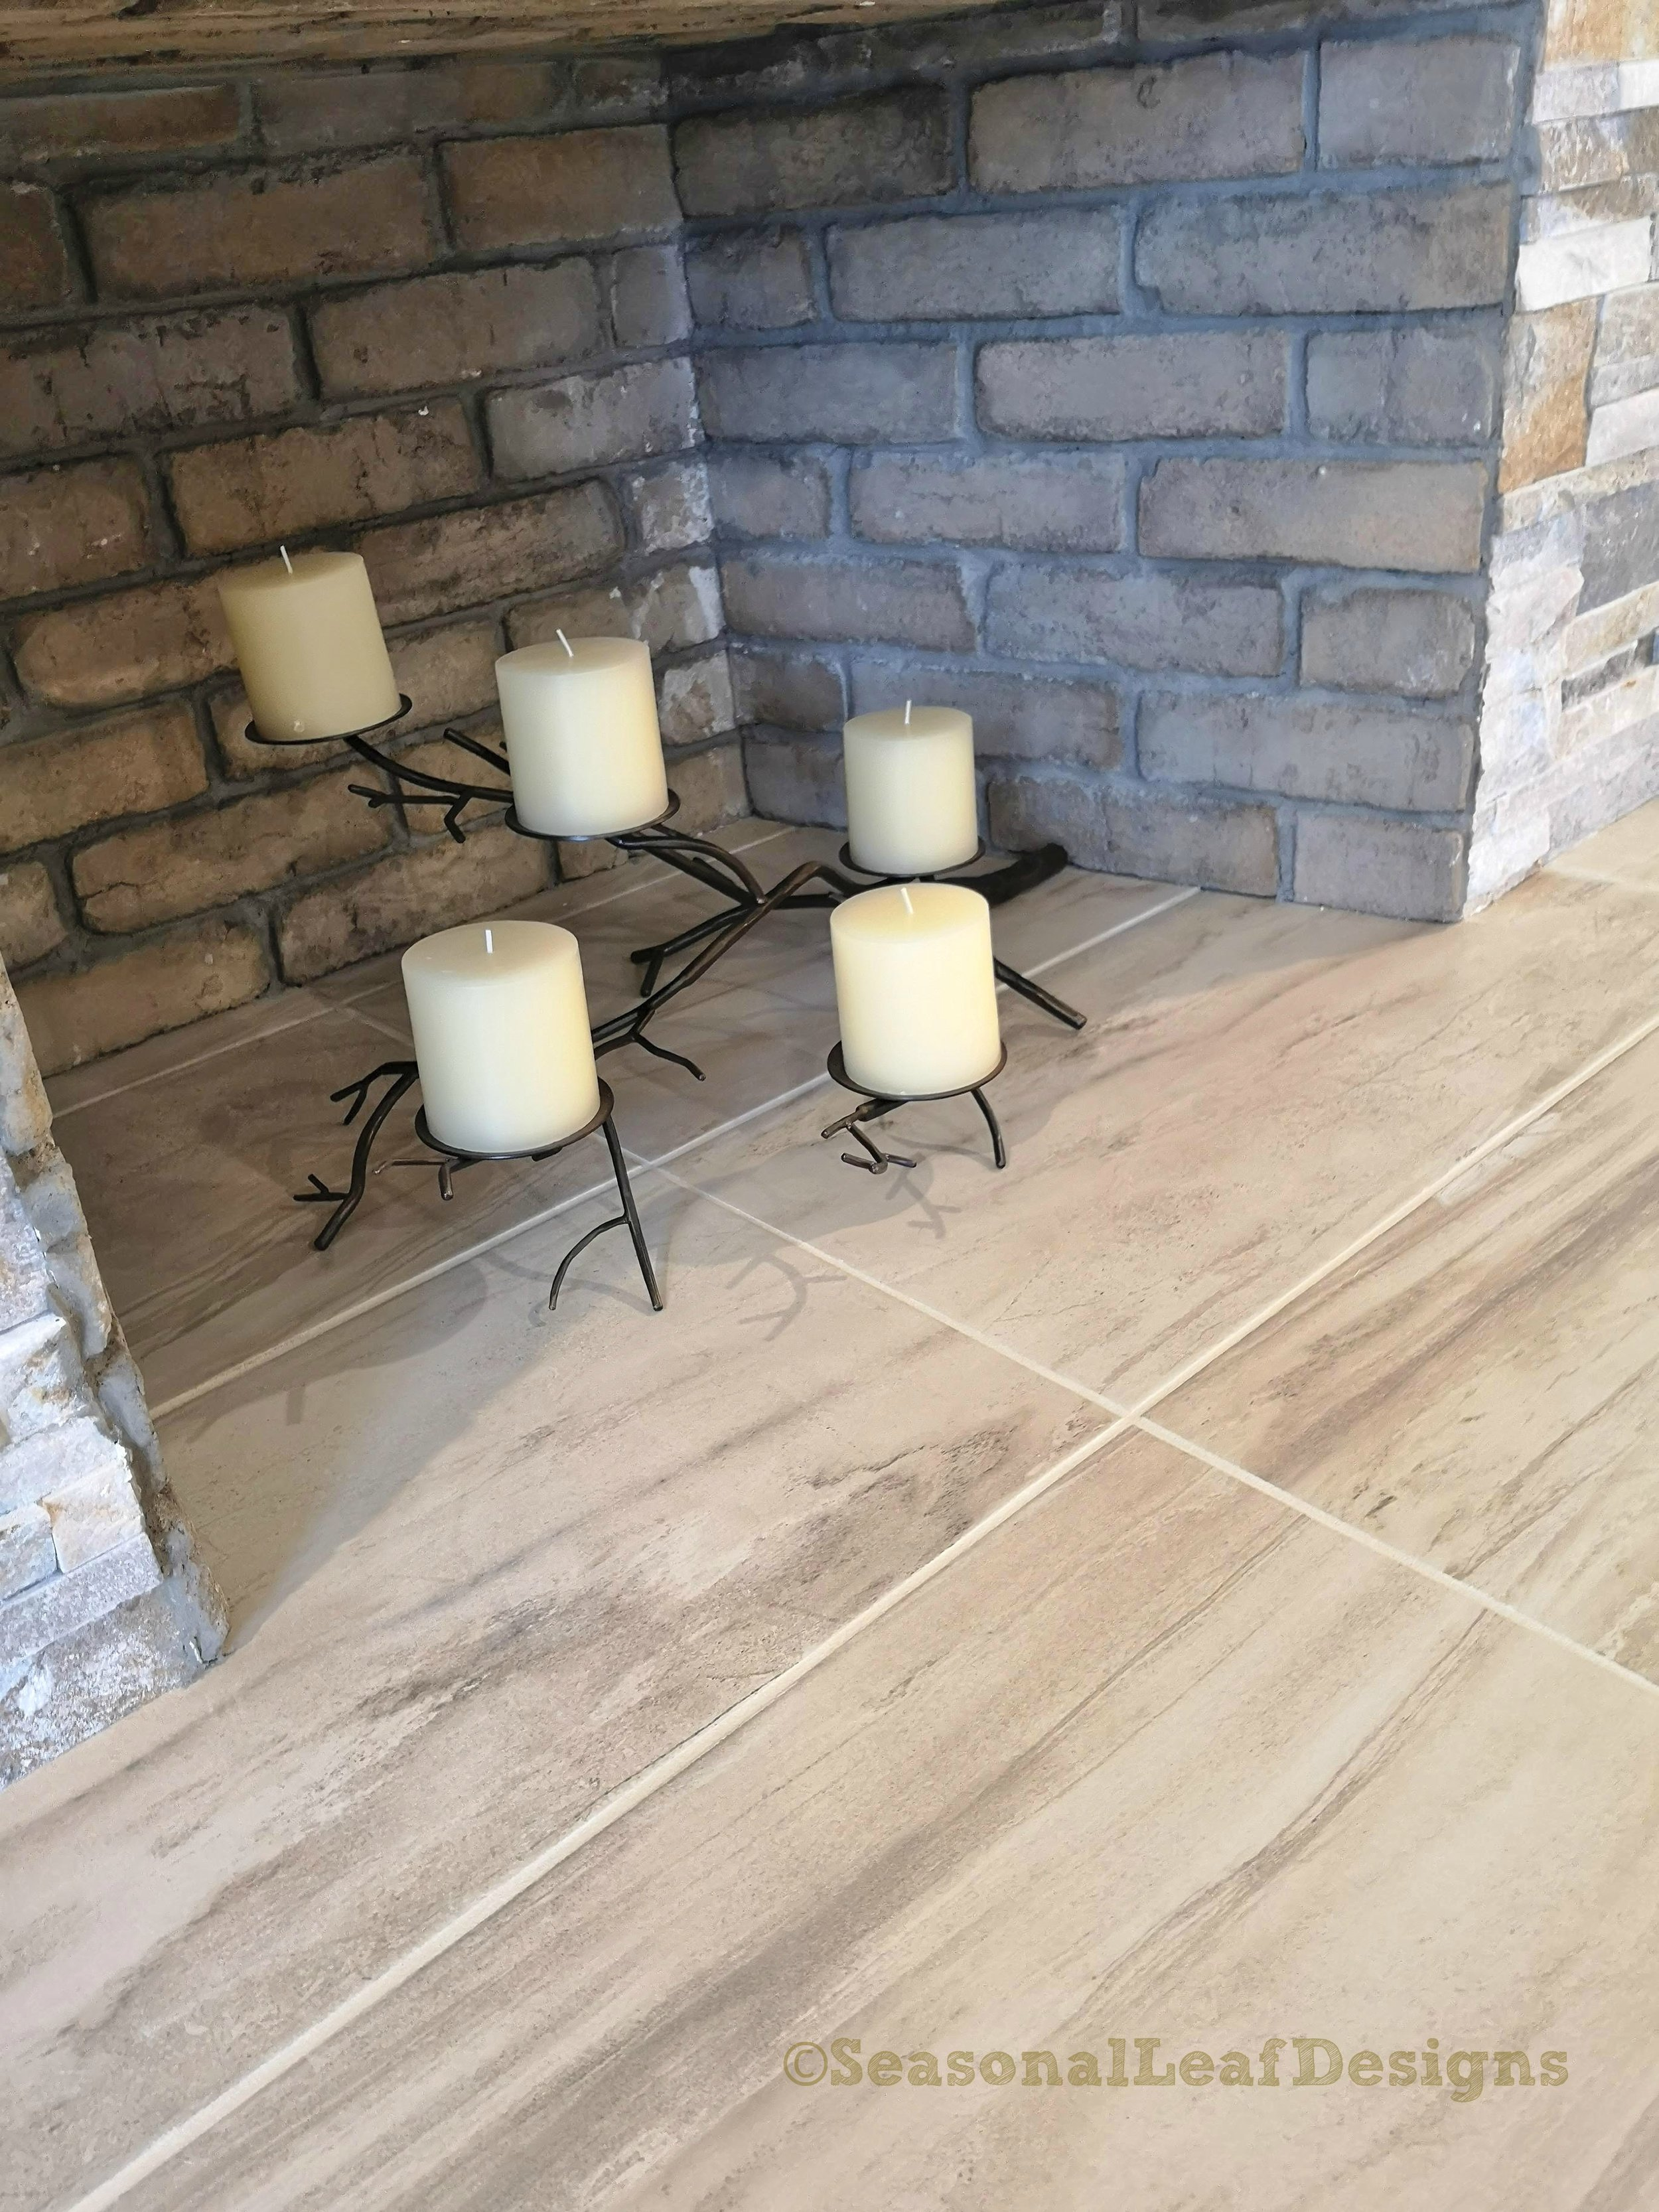 Tile Hearth for seating